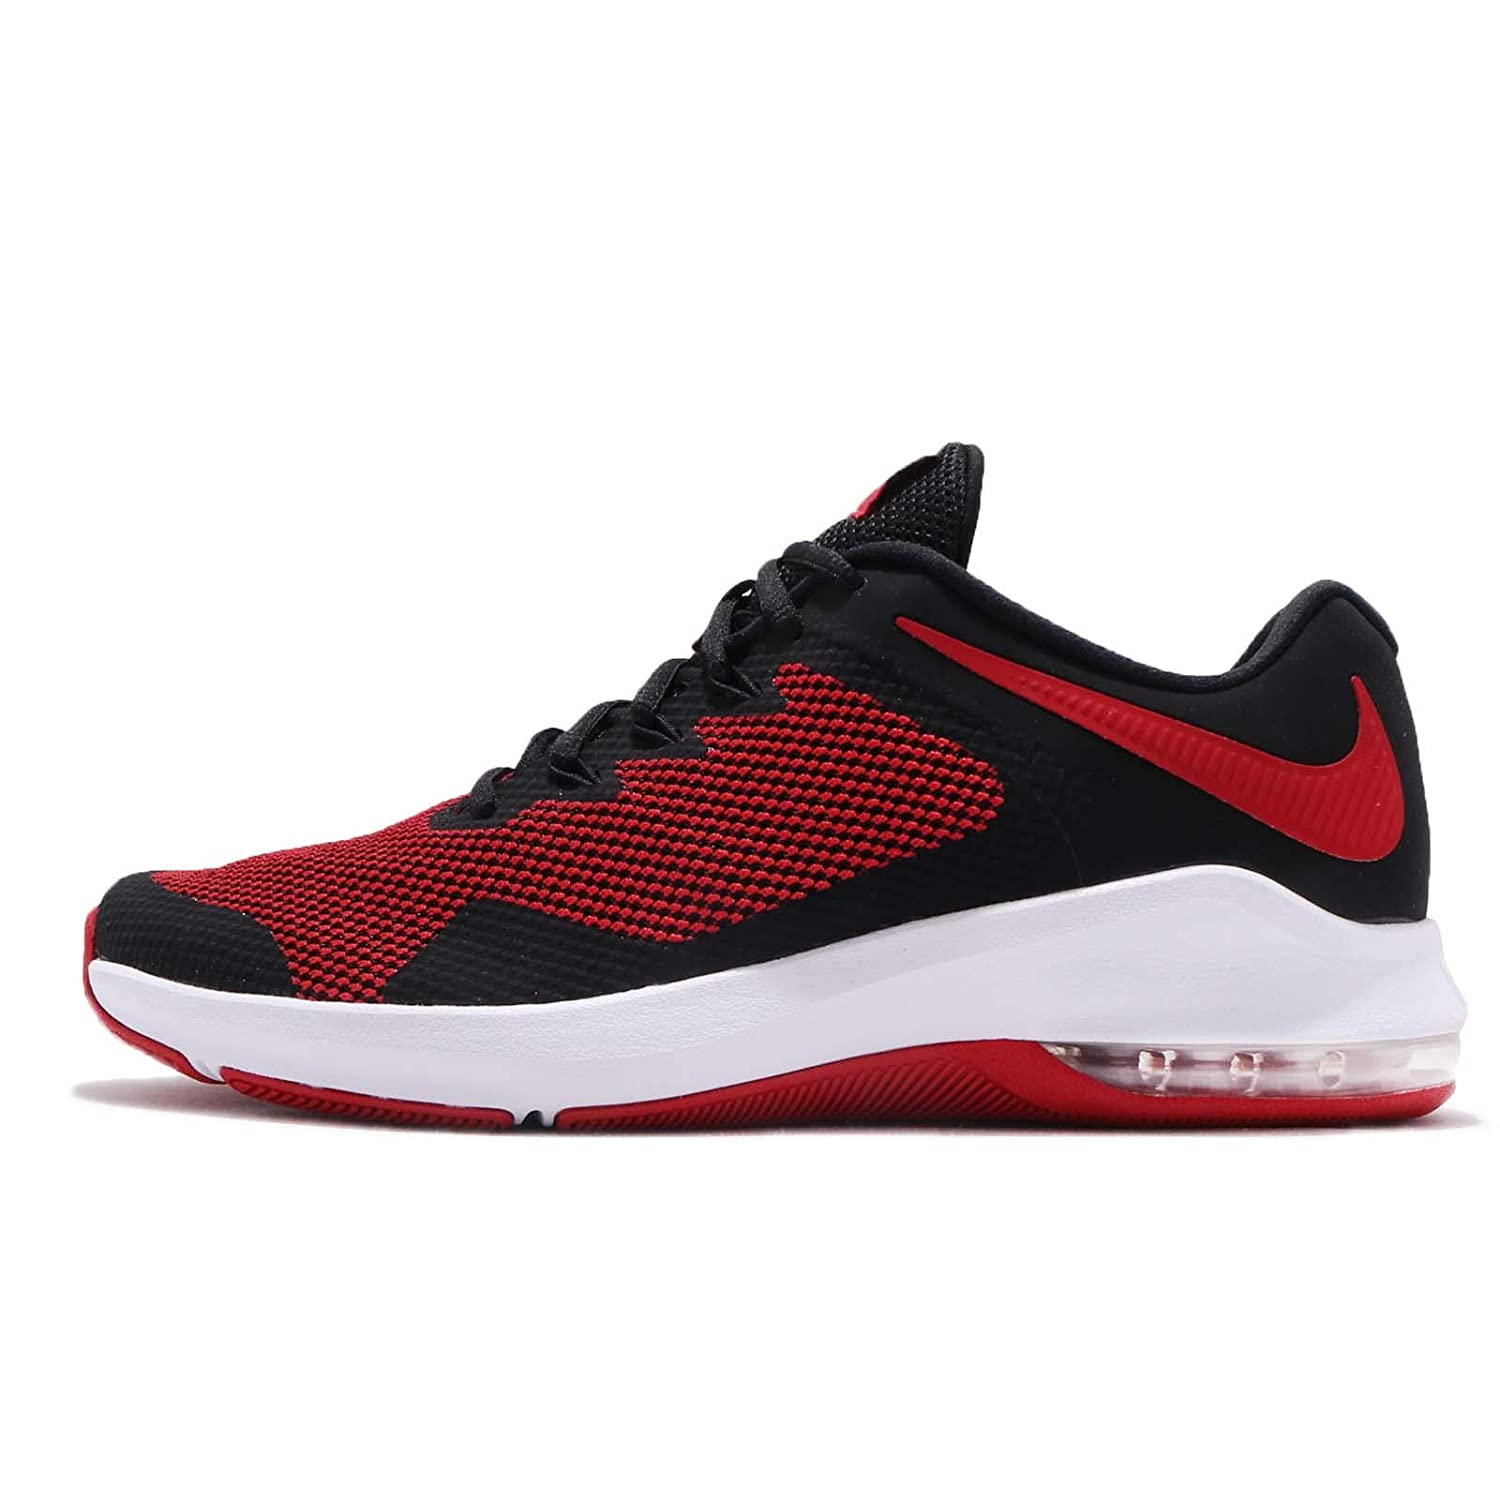 finest selection fddc4 b0e5a Nike Air Max Alpha Trainer, Chaussures de Fitness Homme